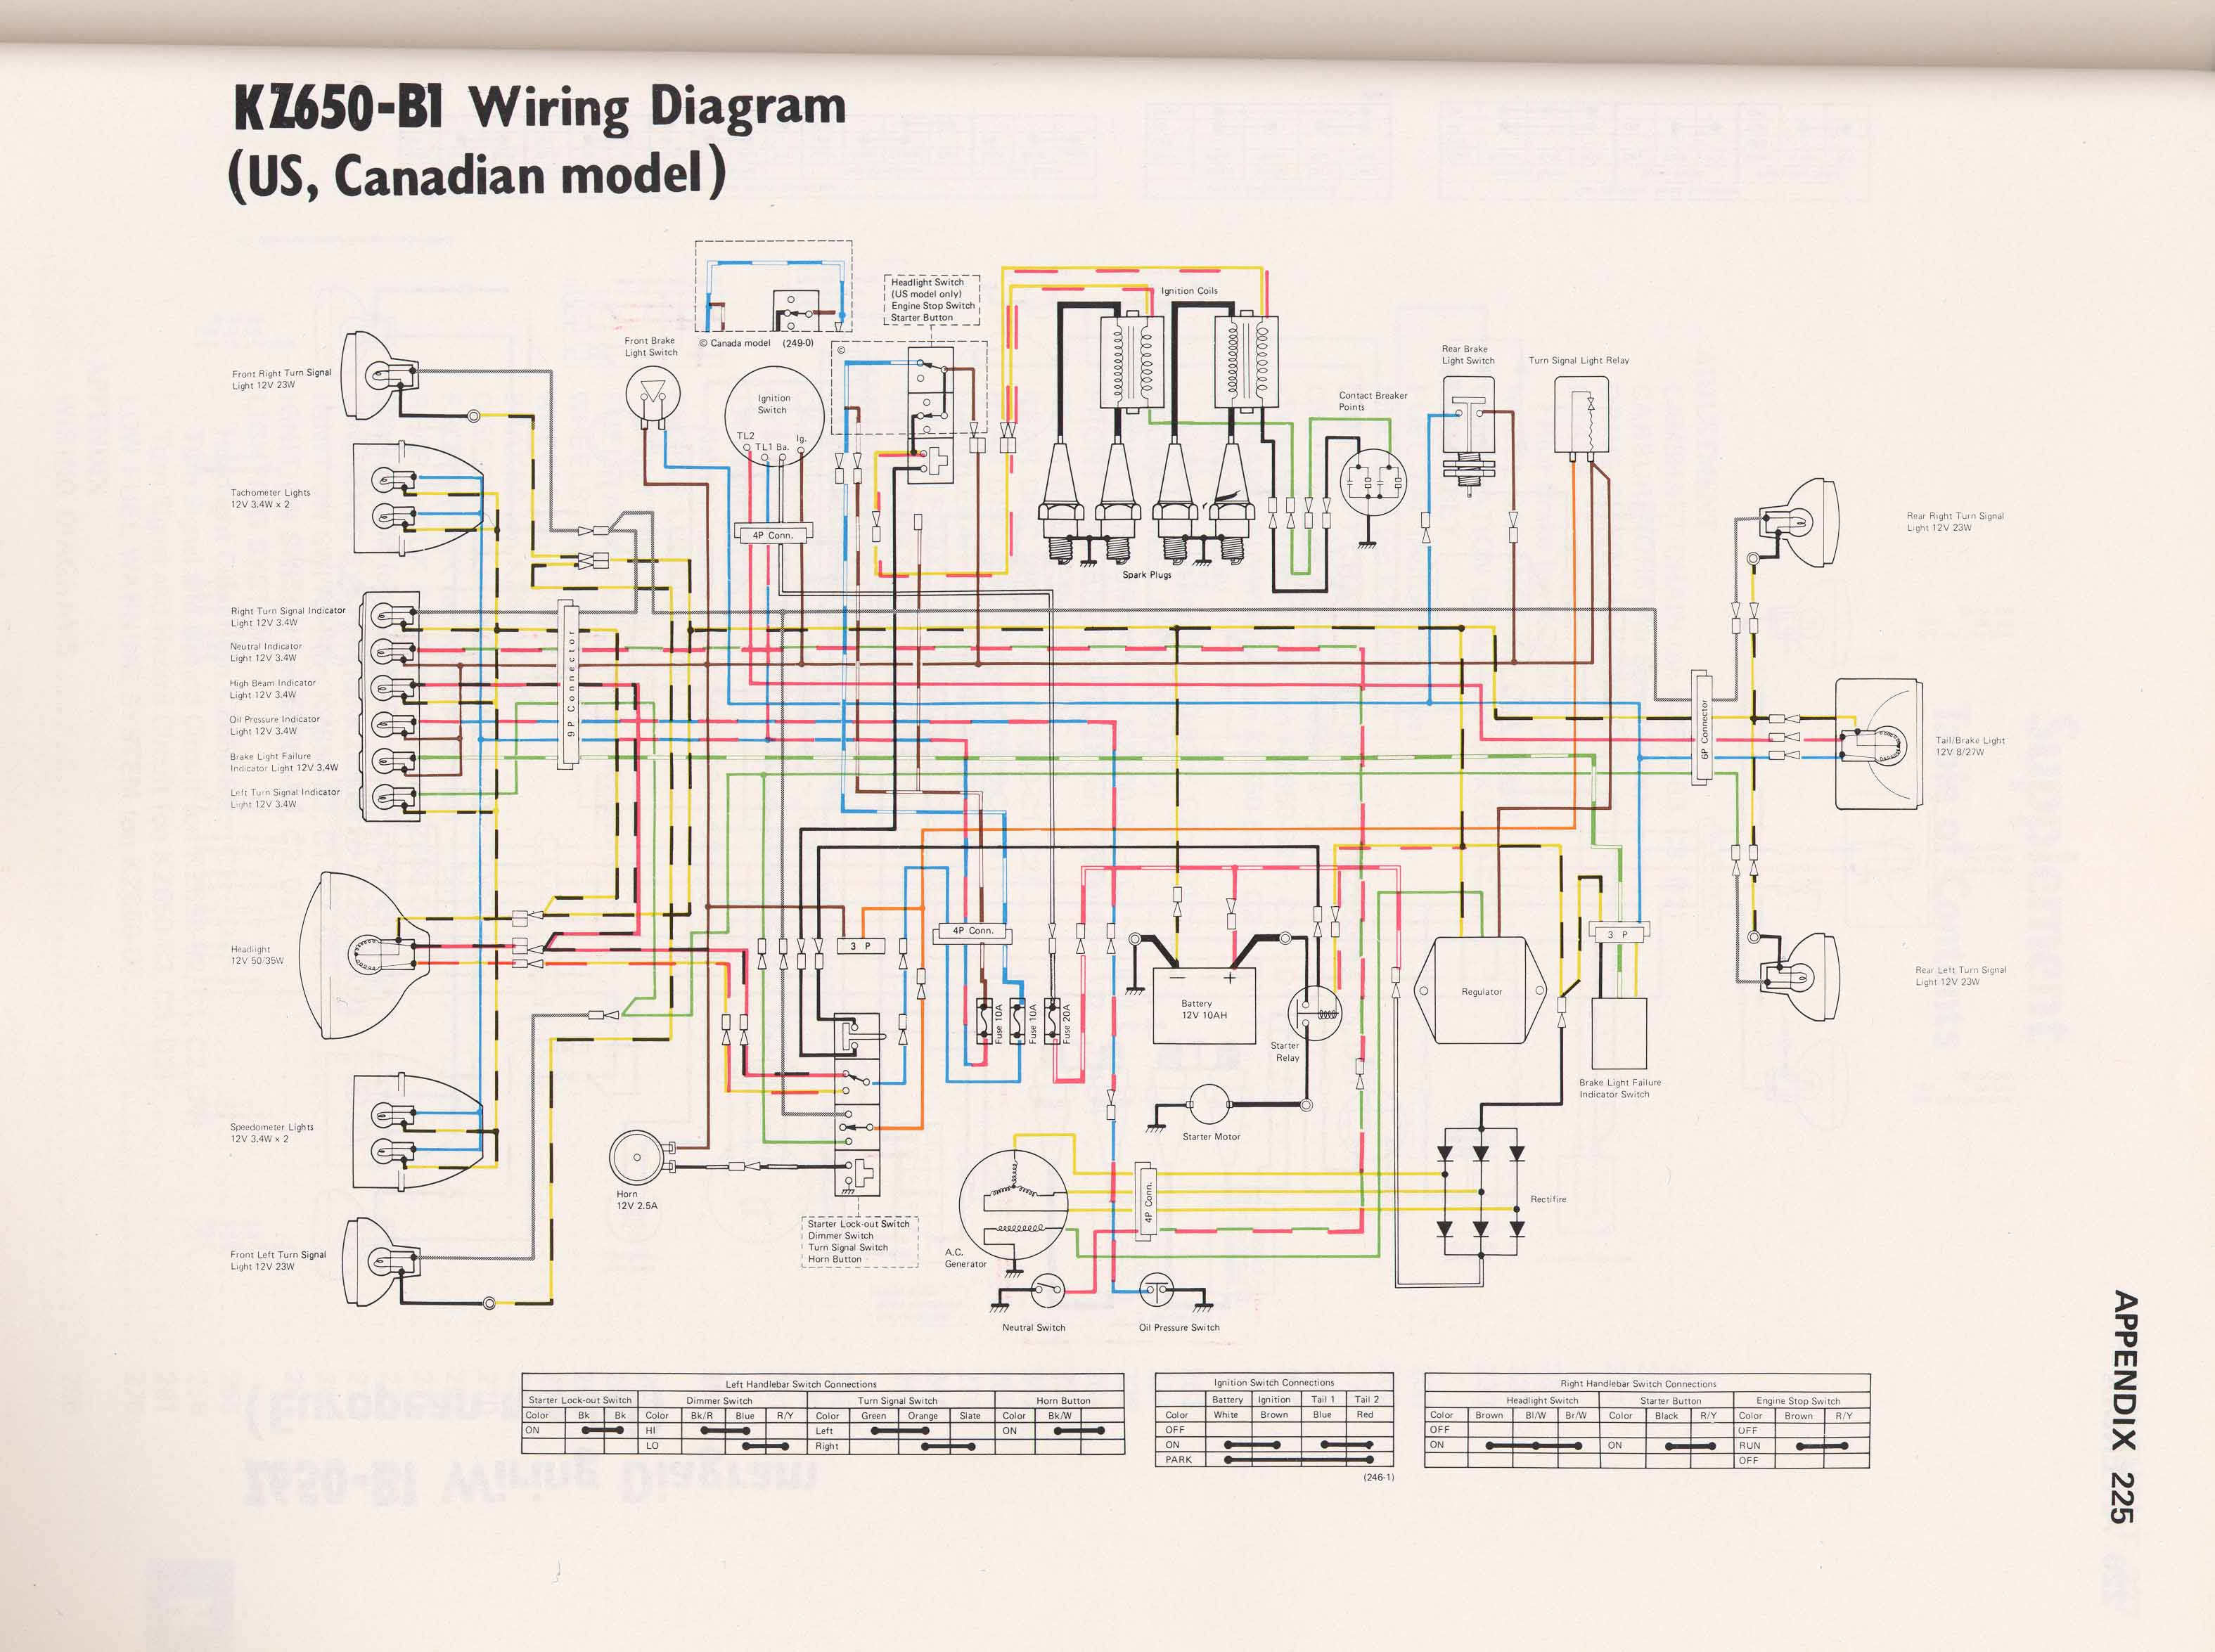 KZ650 B1 kz650 info wiring diagrams modem wiring diagram at soozxer.org